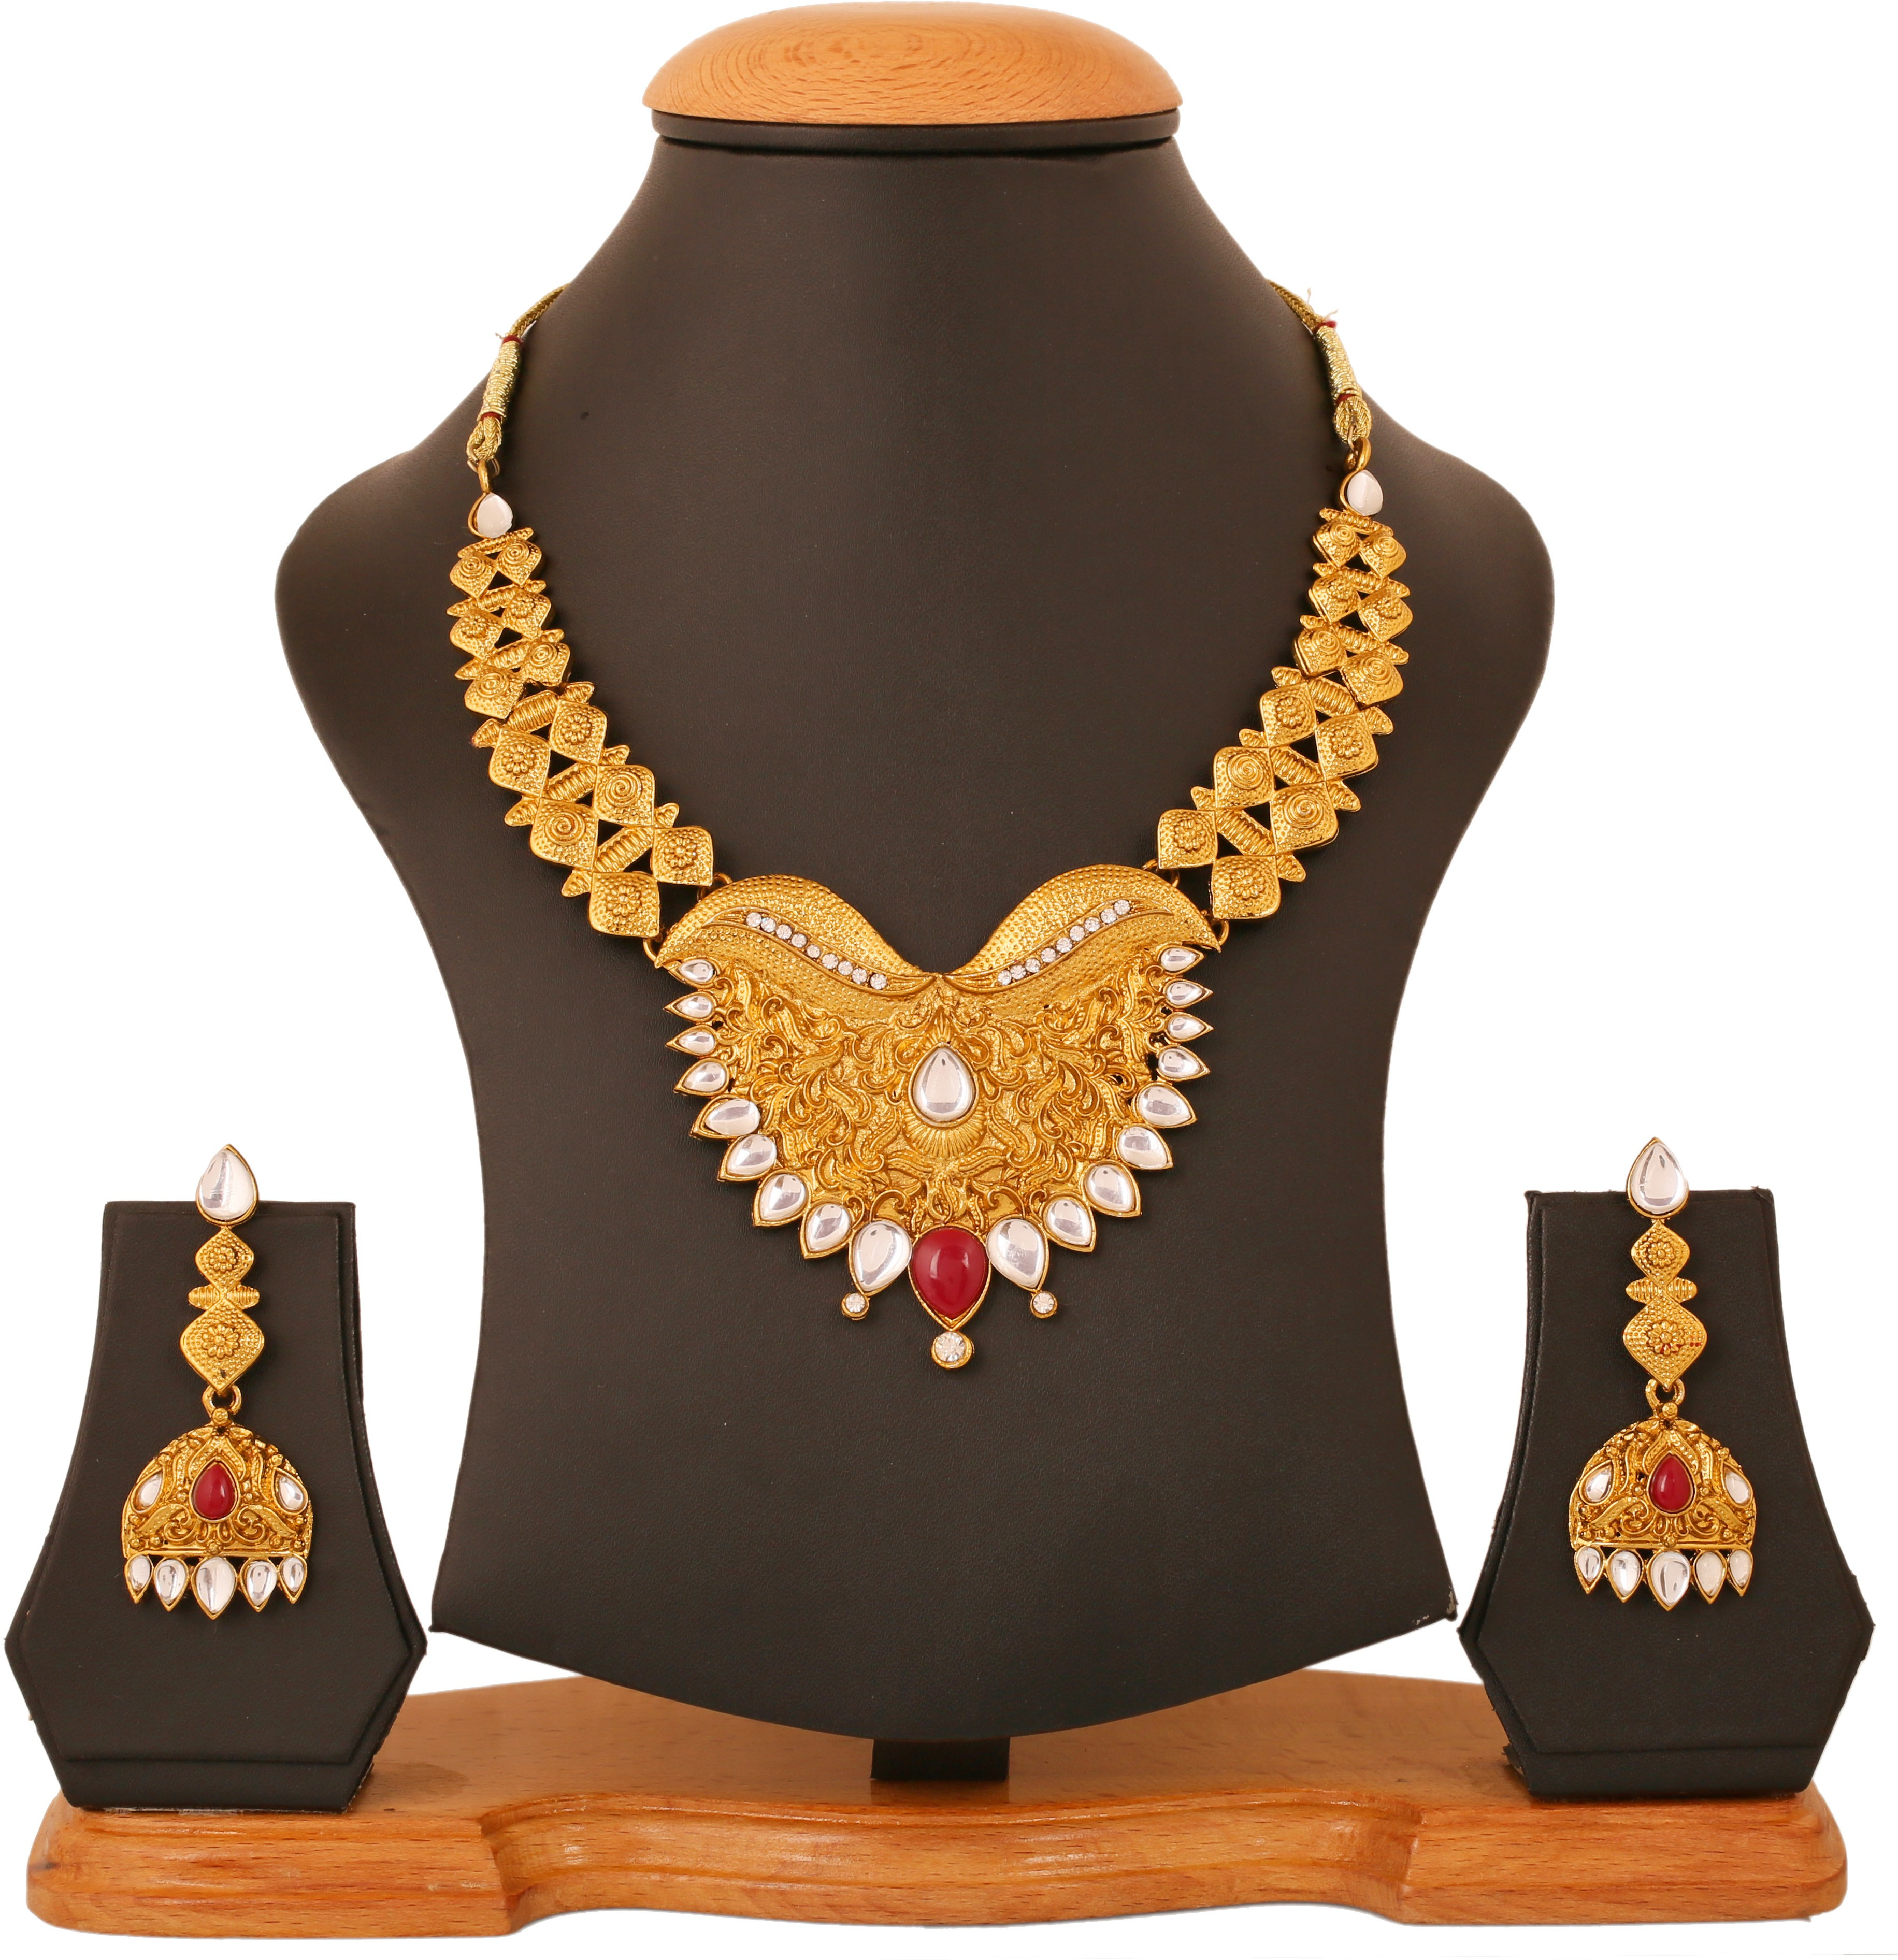 ac57ac067 Touchstone Alloy Jewel Set(Red, White) was ₹1499 now ₹419